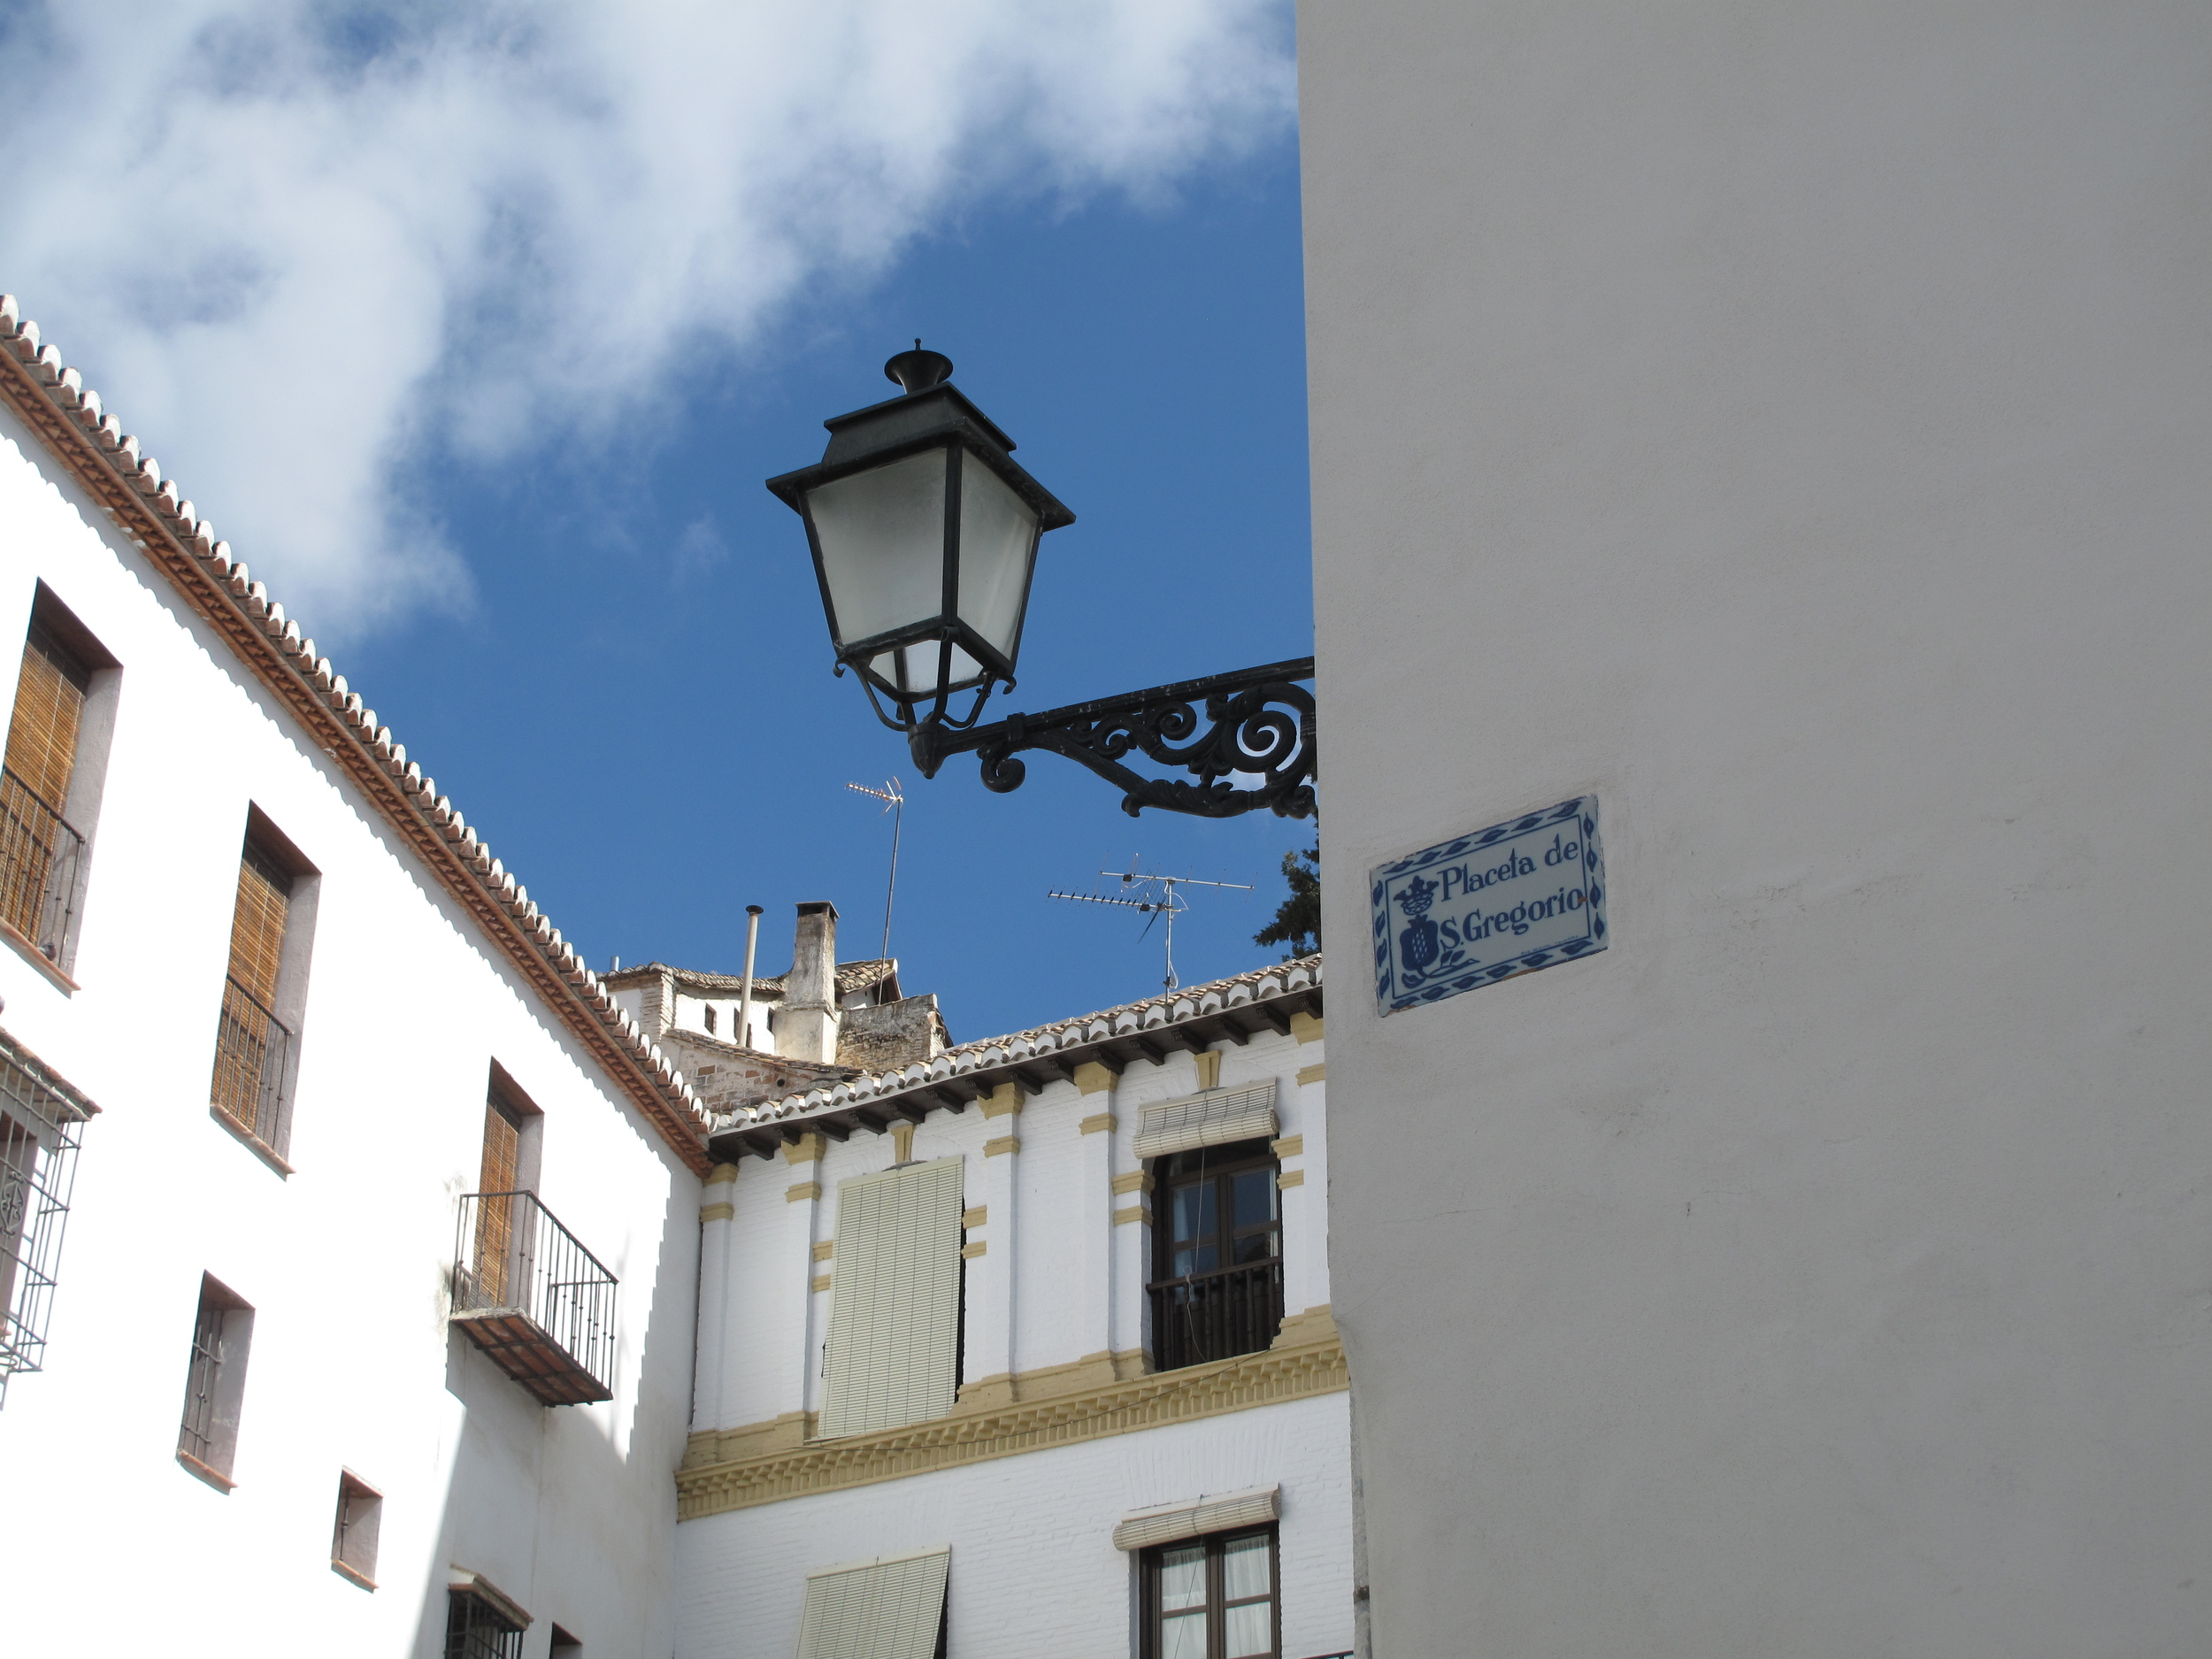 street lamps and signs in the white washed hills of Granada